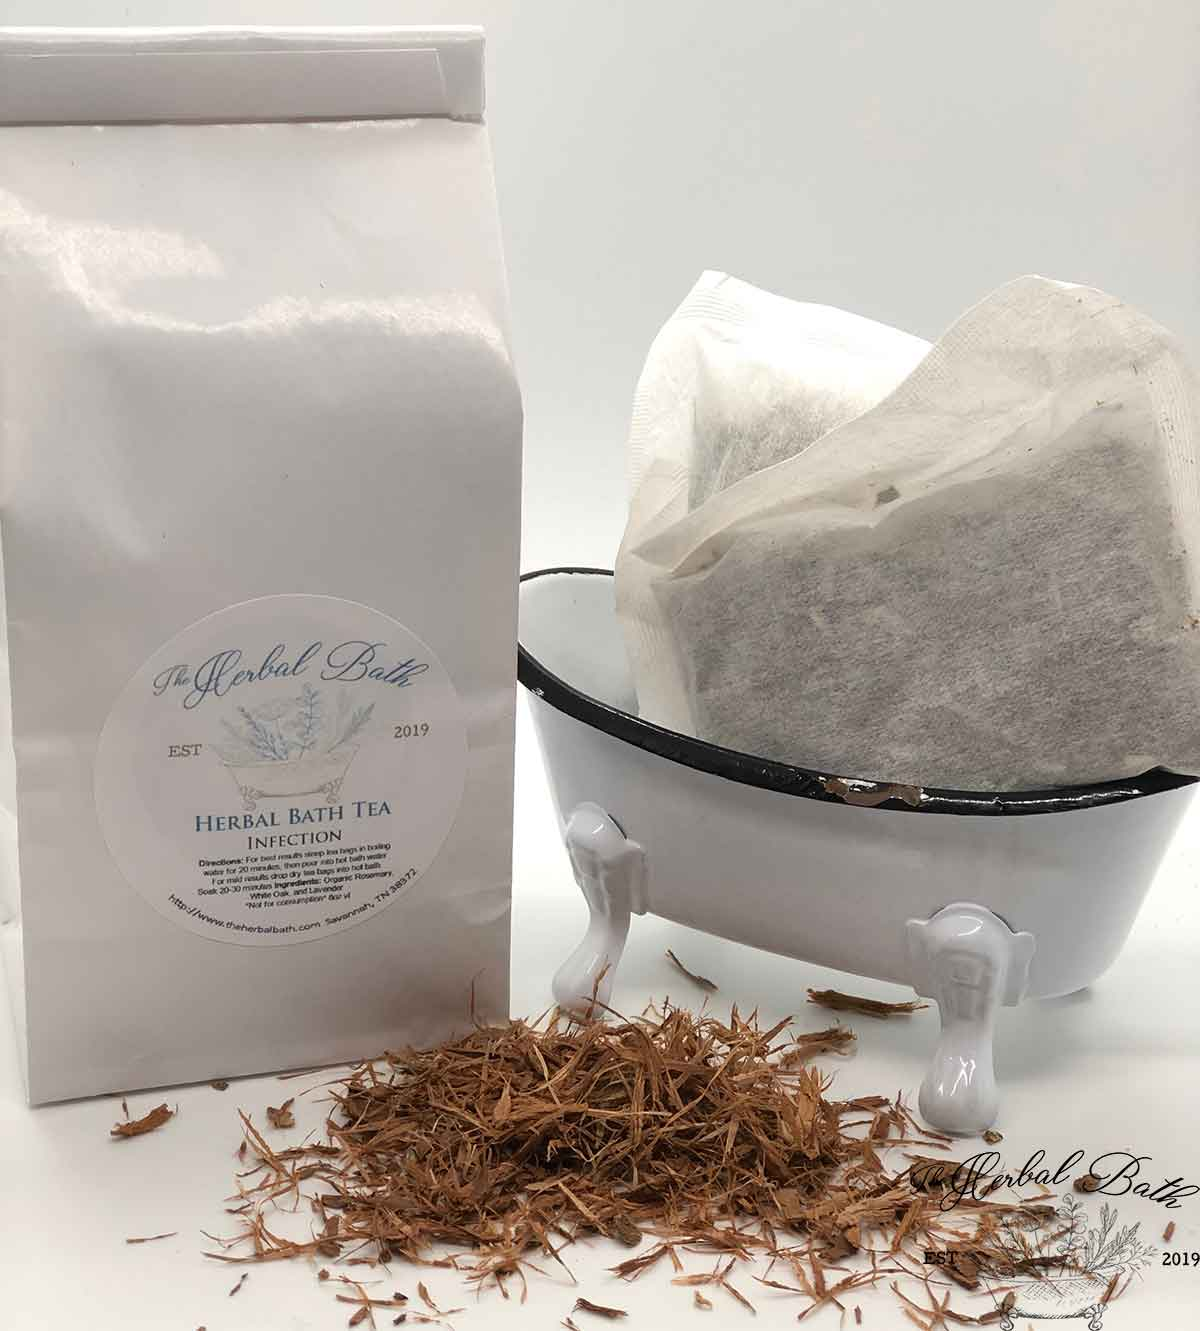 Infection relief herbal bath tea